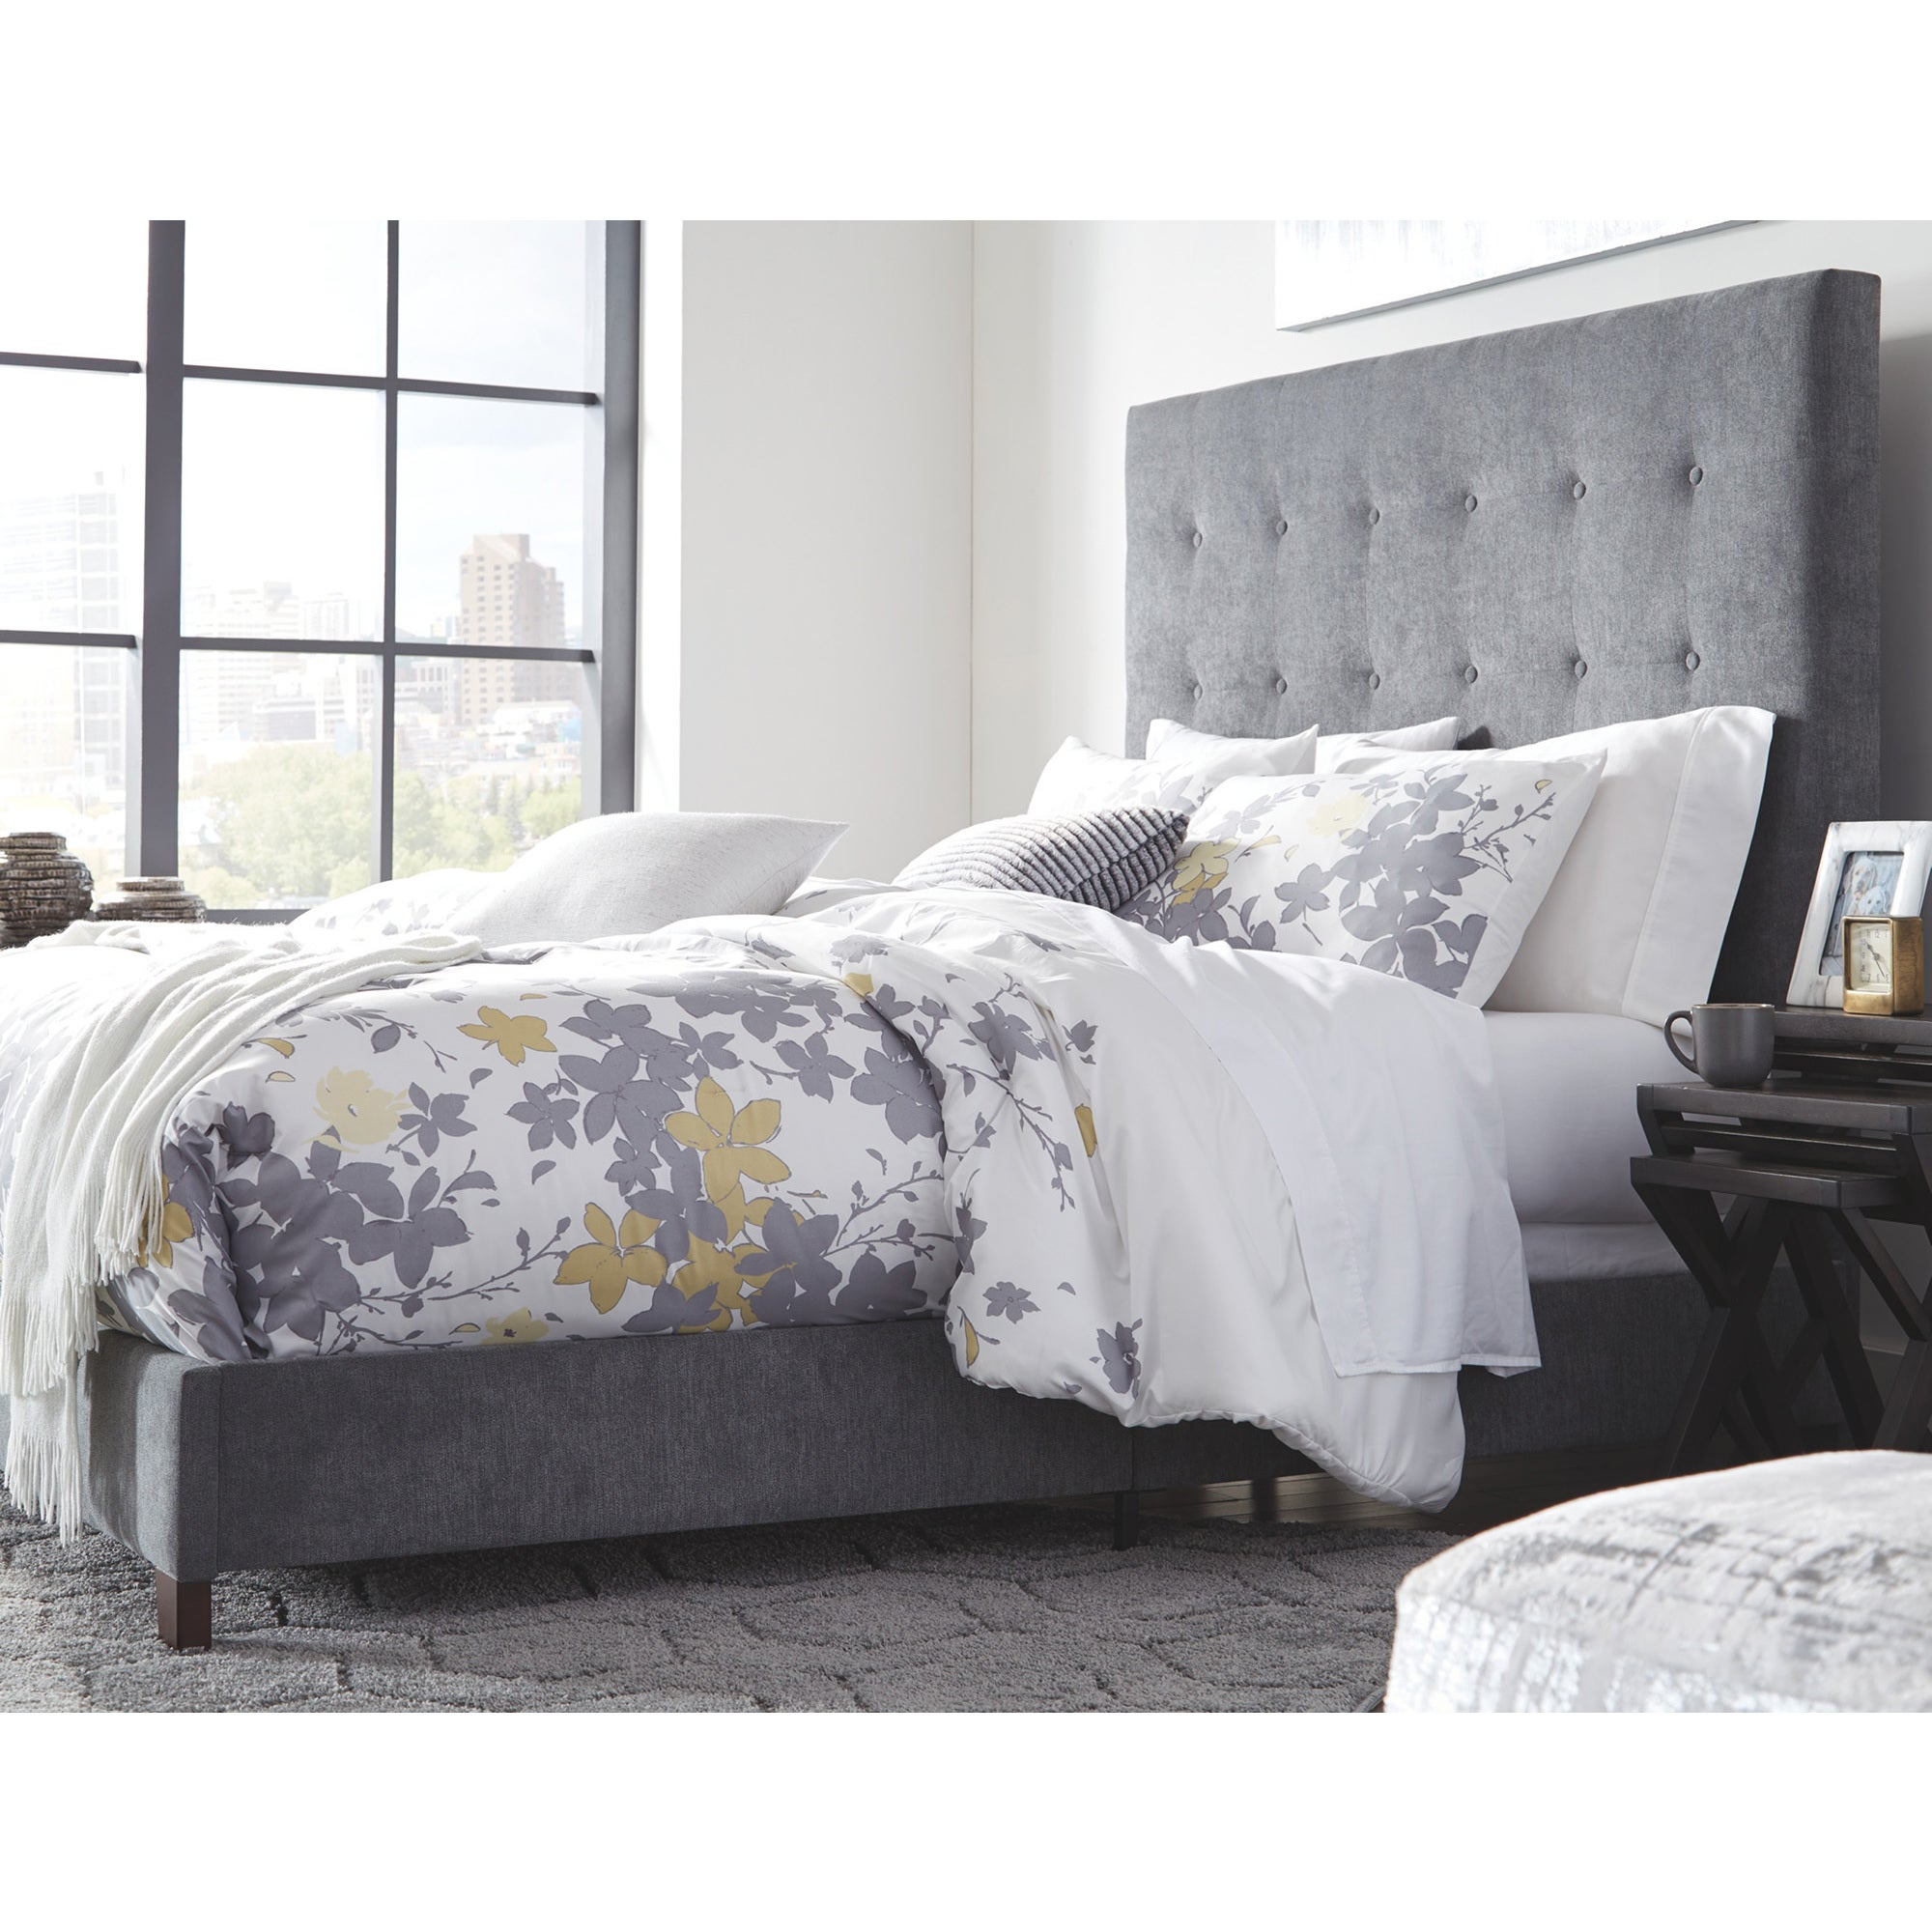 Dolante Queen Upholstered Bed Multi Overstock 26427125